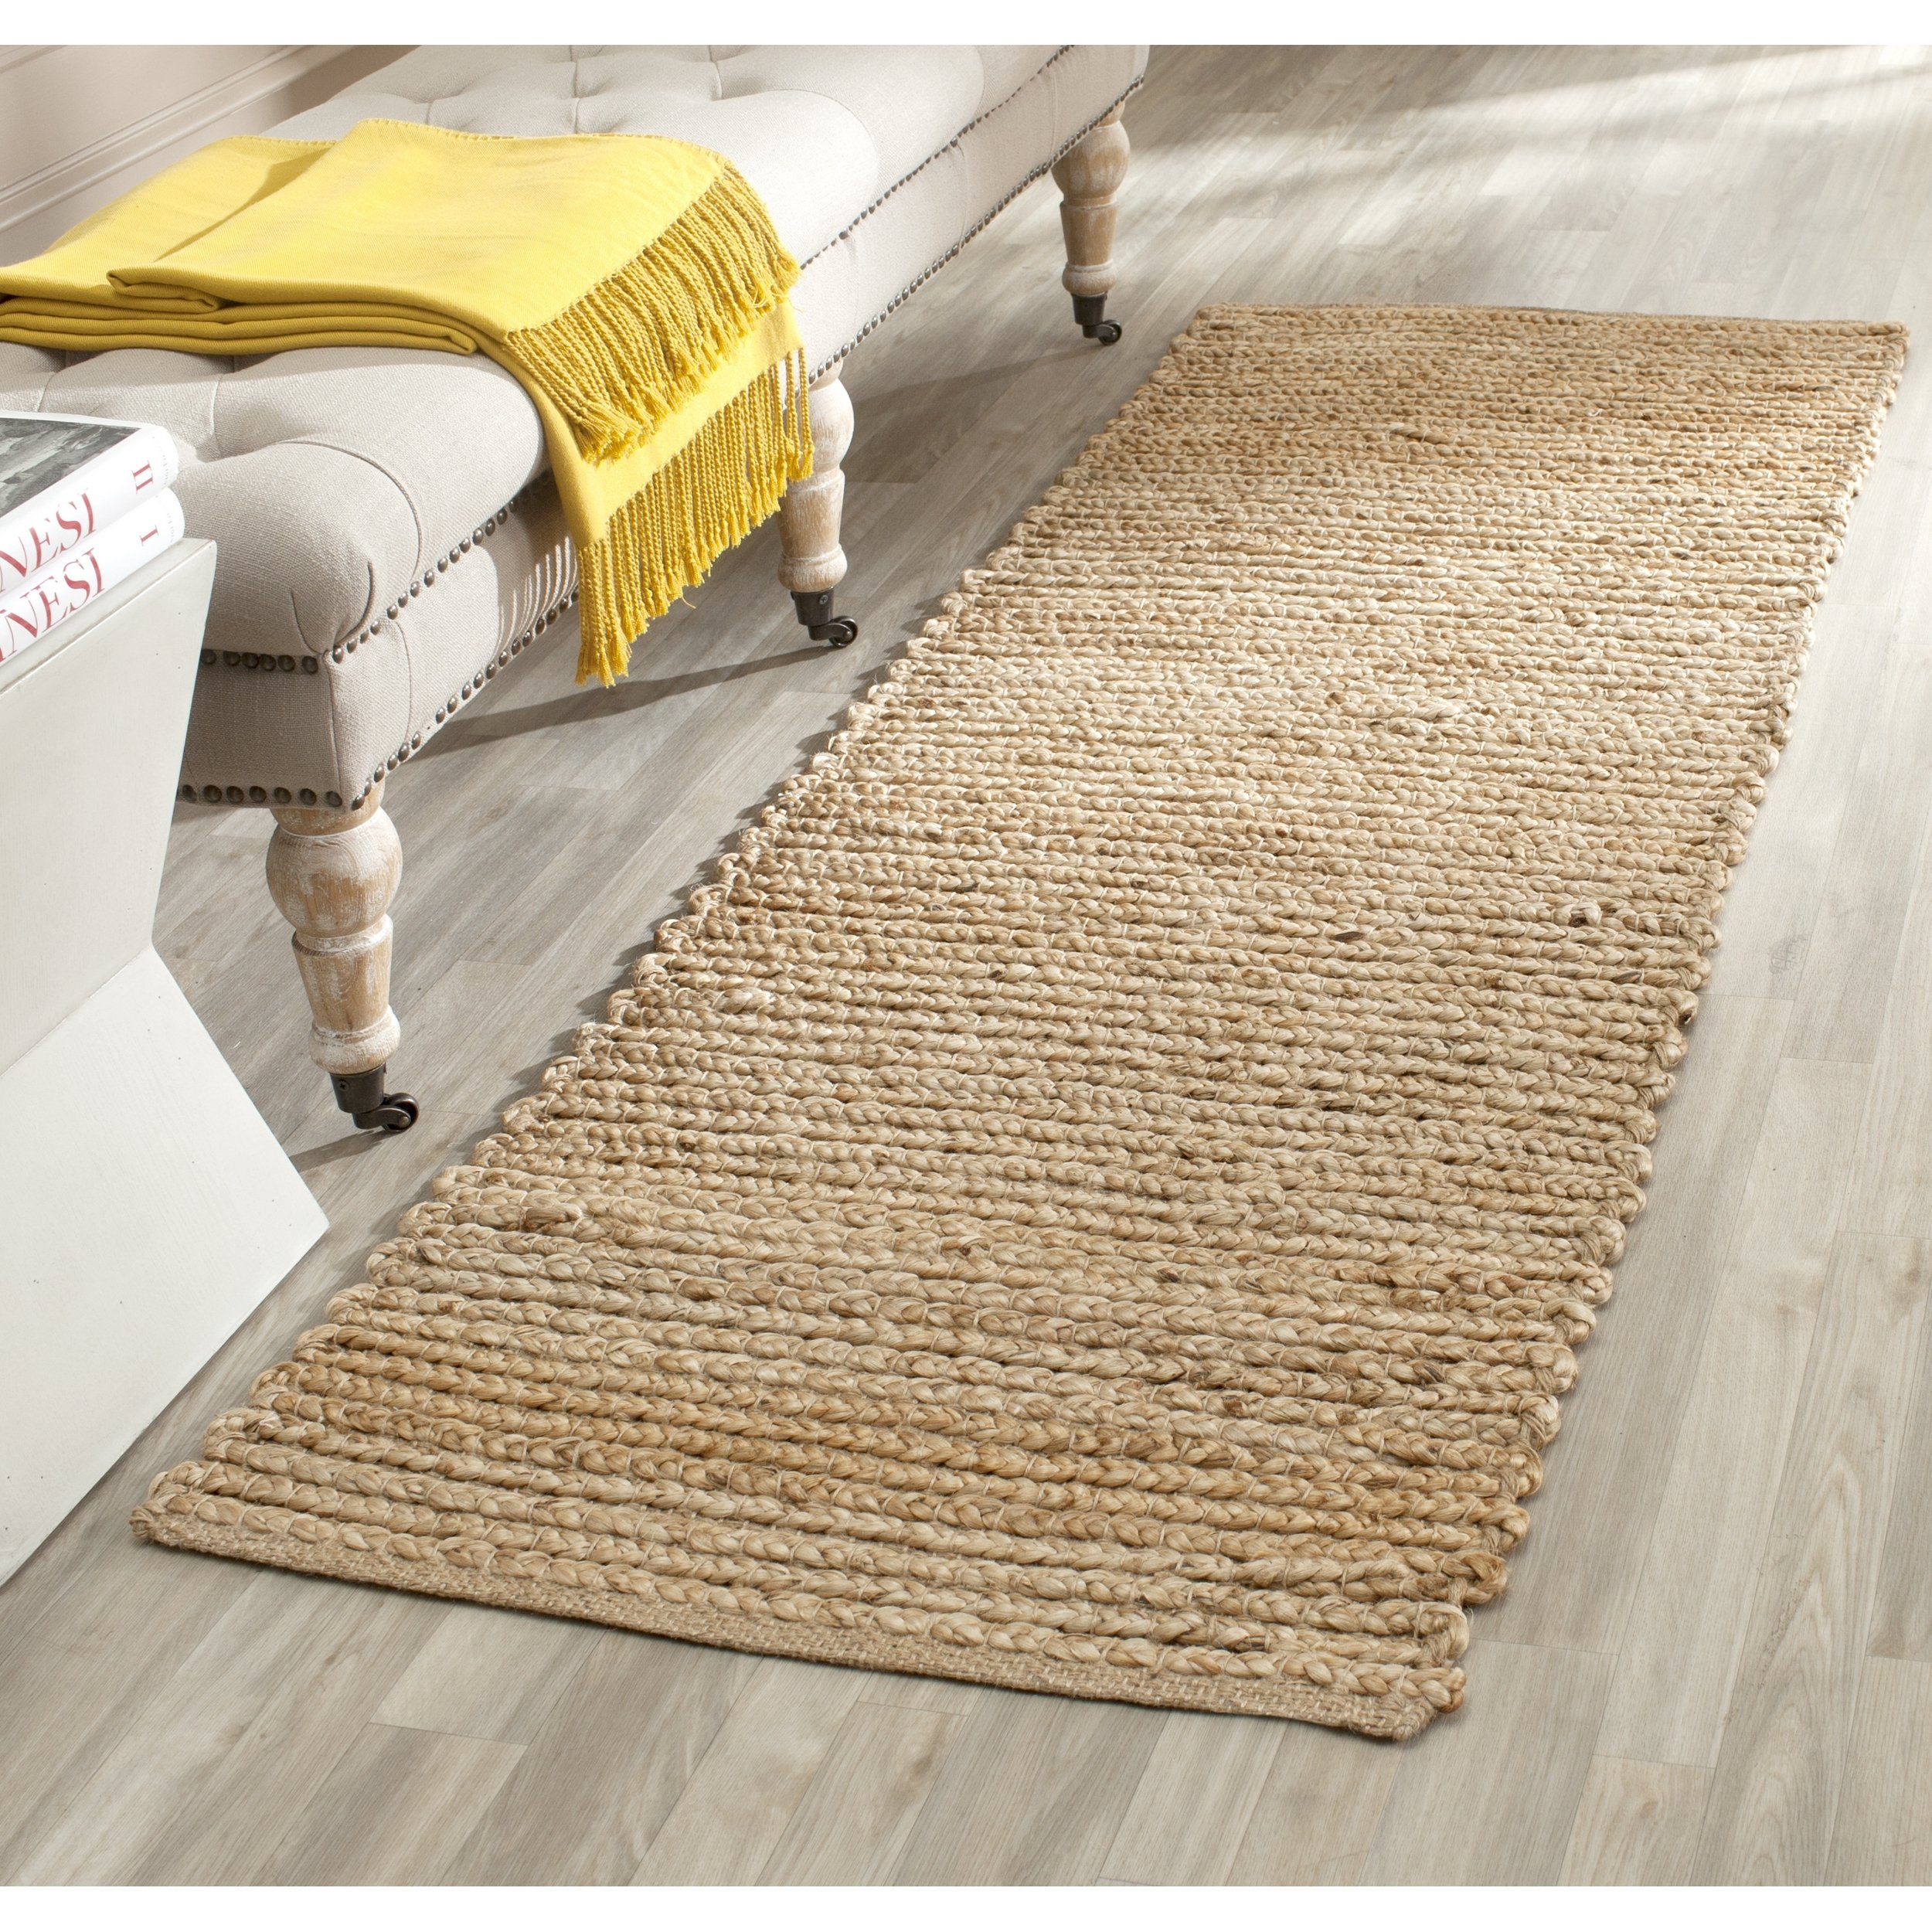 Safavieh Cape Cod Collection CAP355A Hand Woven Flatweave Natural Jute Runner (2'3 x 22') by Safavieh